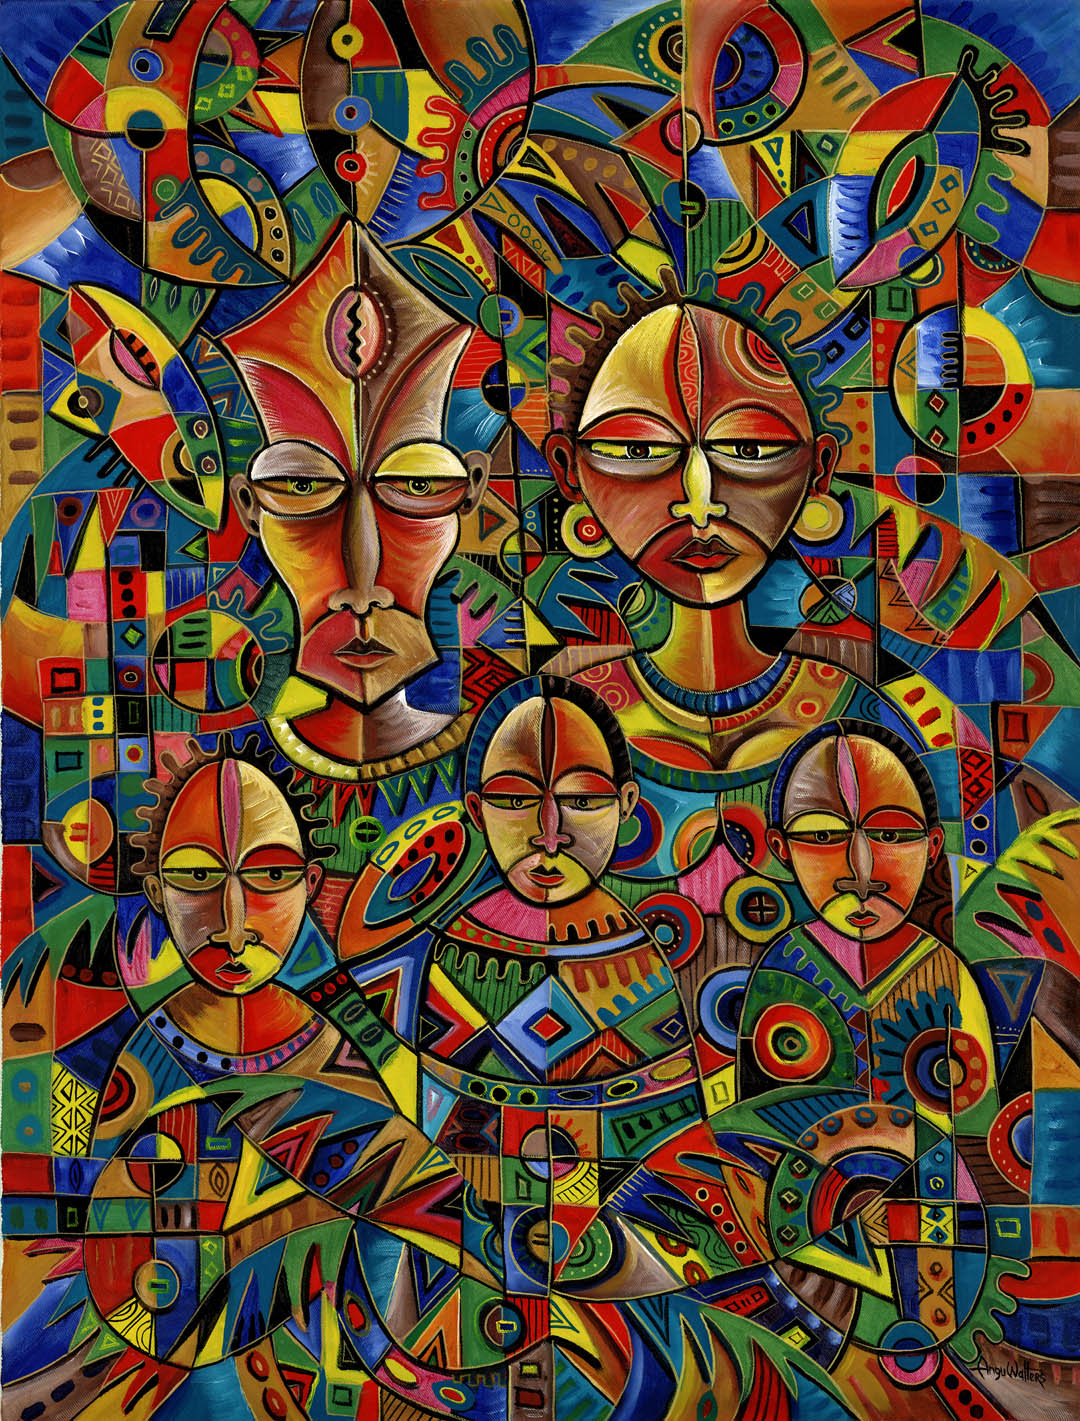 This is an acrylic painting of a family in Africa done in such festive colors.